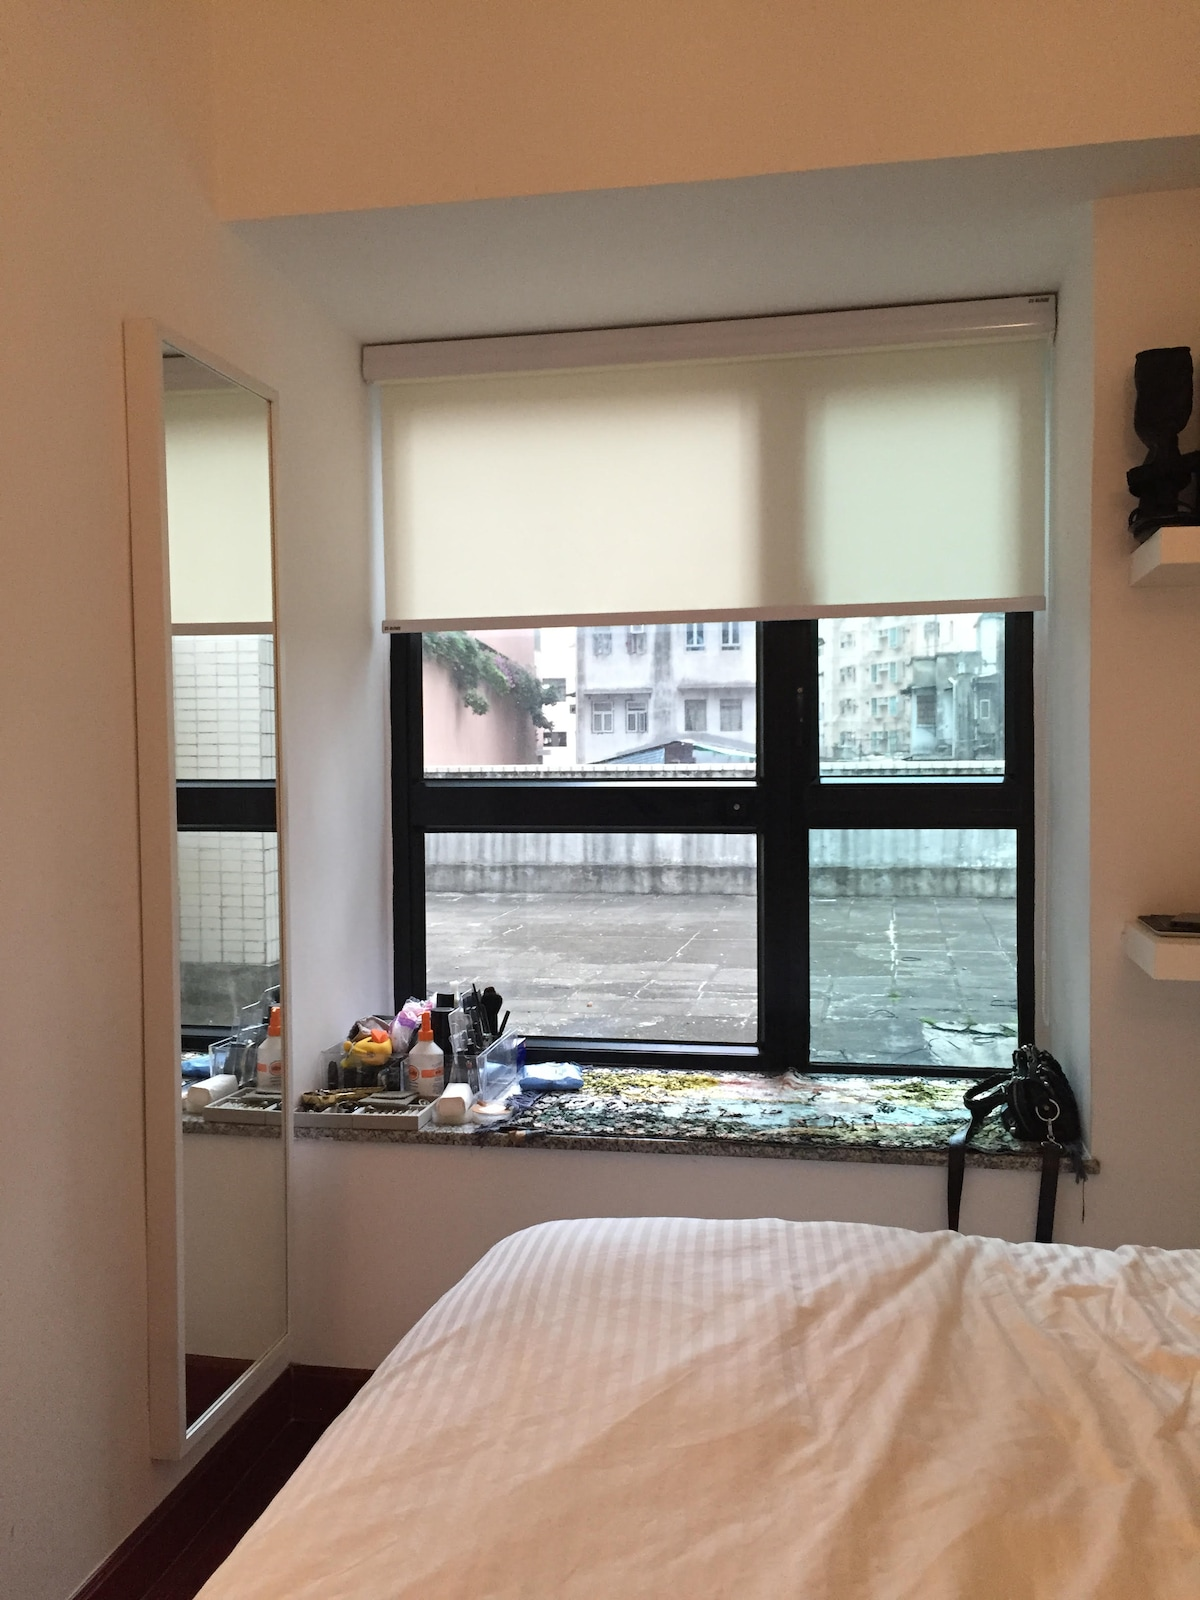 Immaculate 2 bedroom in SOHO